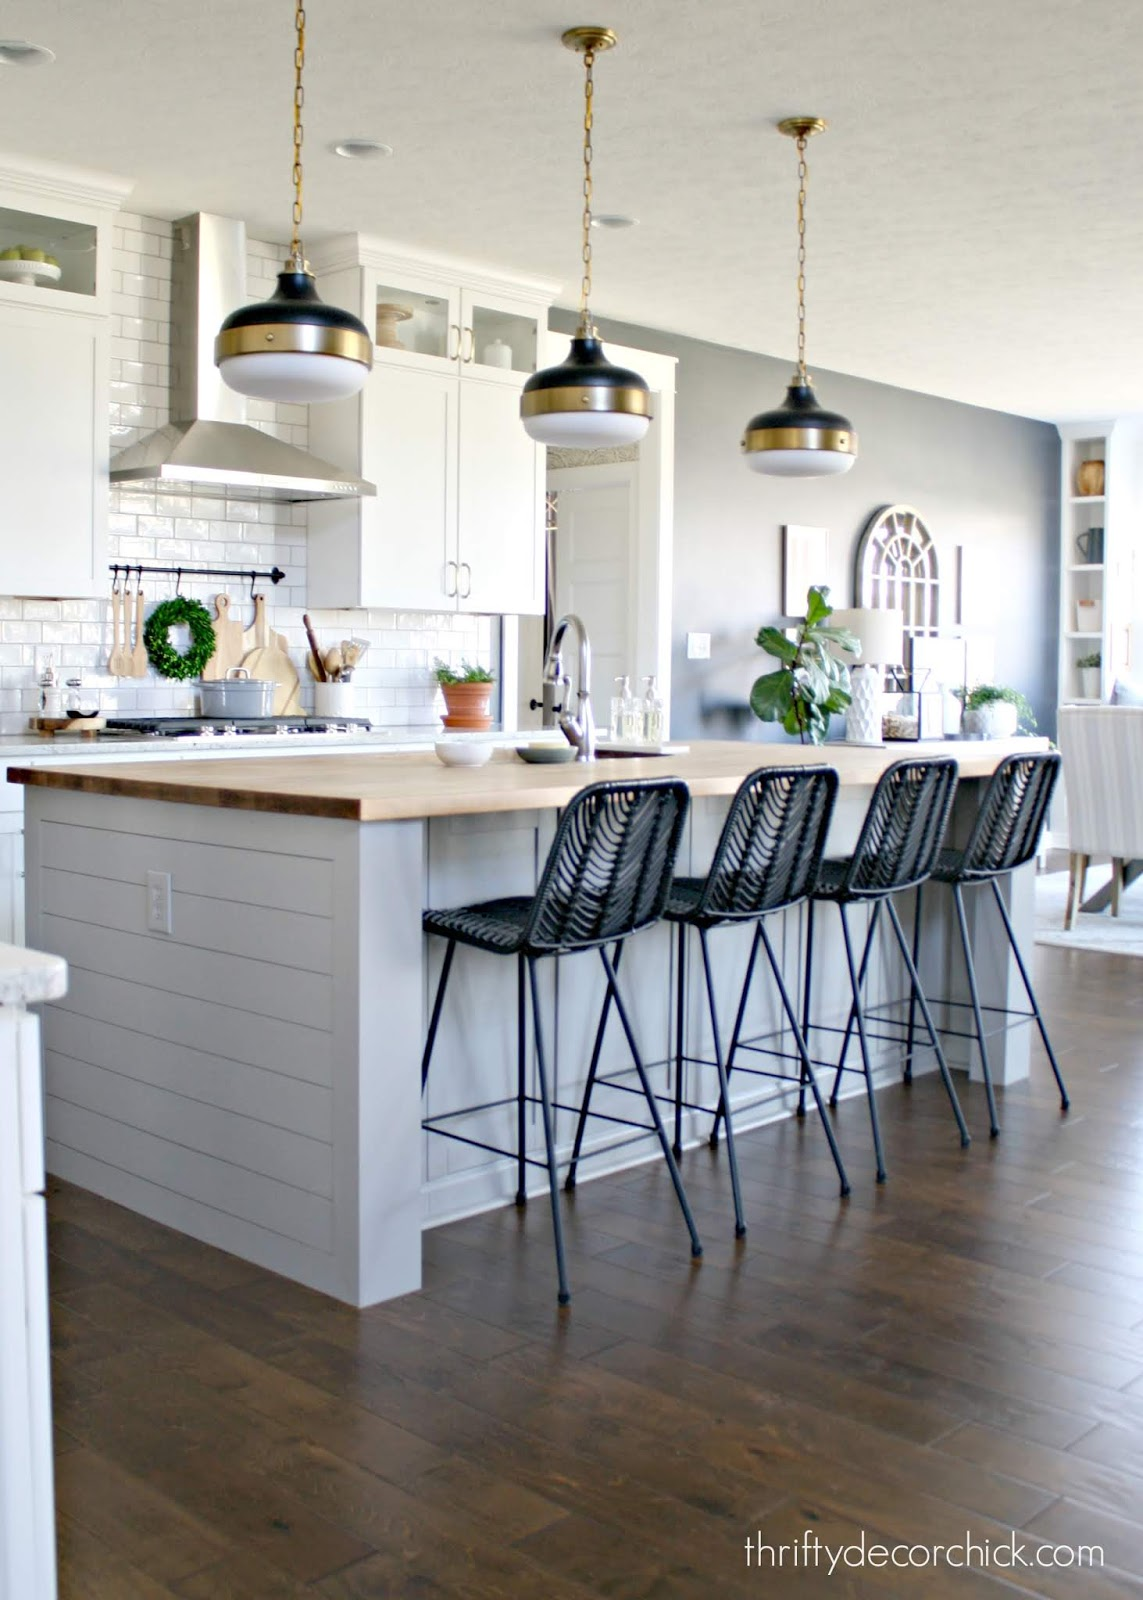 Best Kitchen Stools The Best Place For A Huge Selection Of Kitchen Stools And Chairs